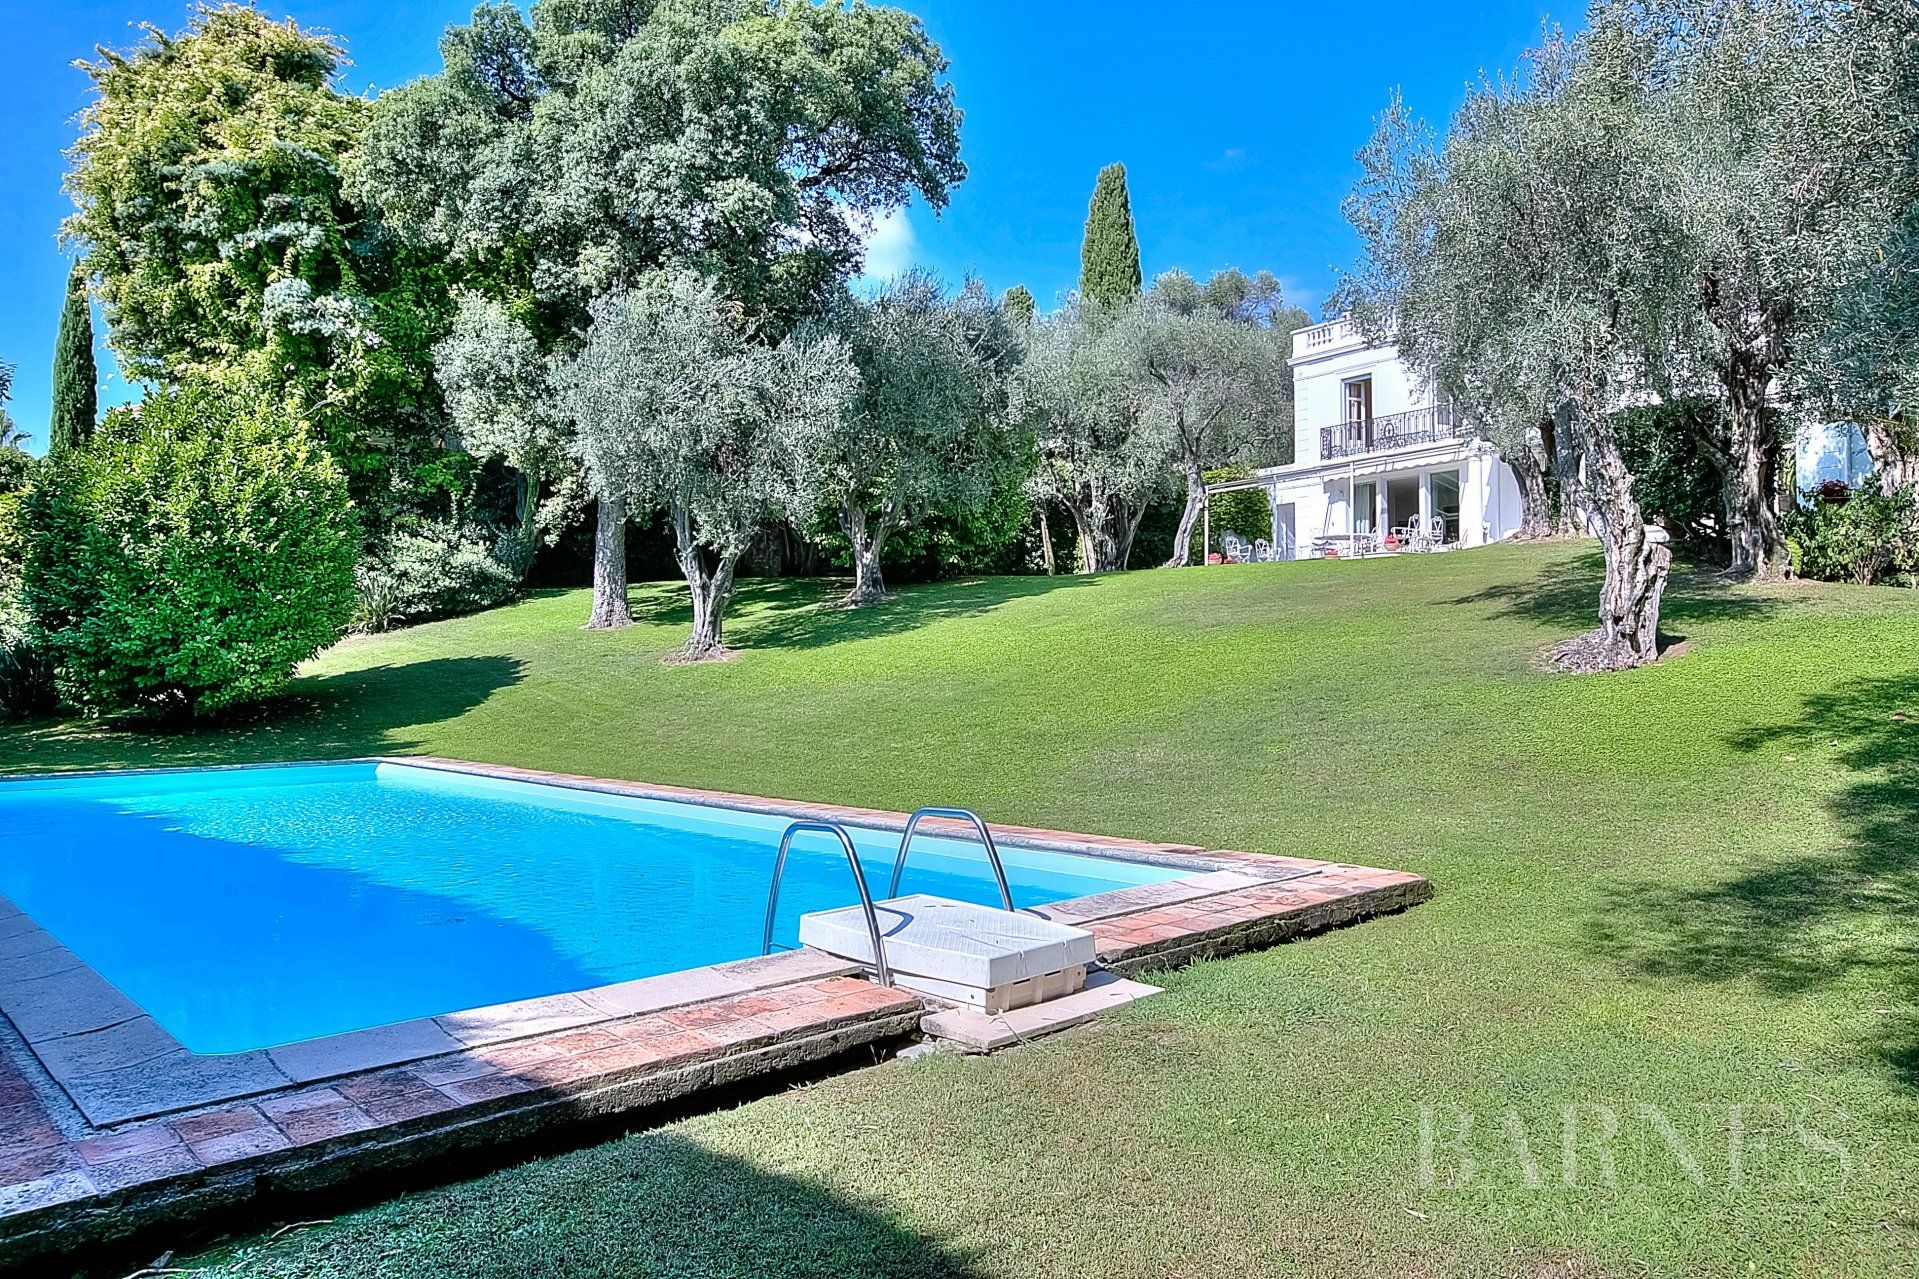 CANNES - BOURGEOIS VILLA - SWIMMING POOL - TENNIS - SEA VIEW